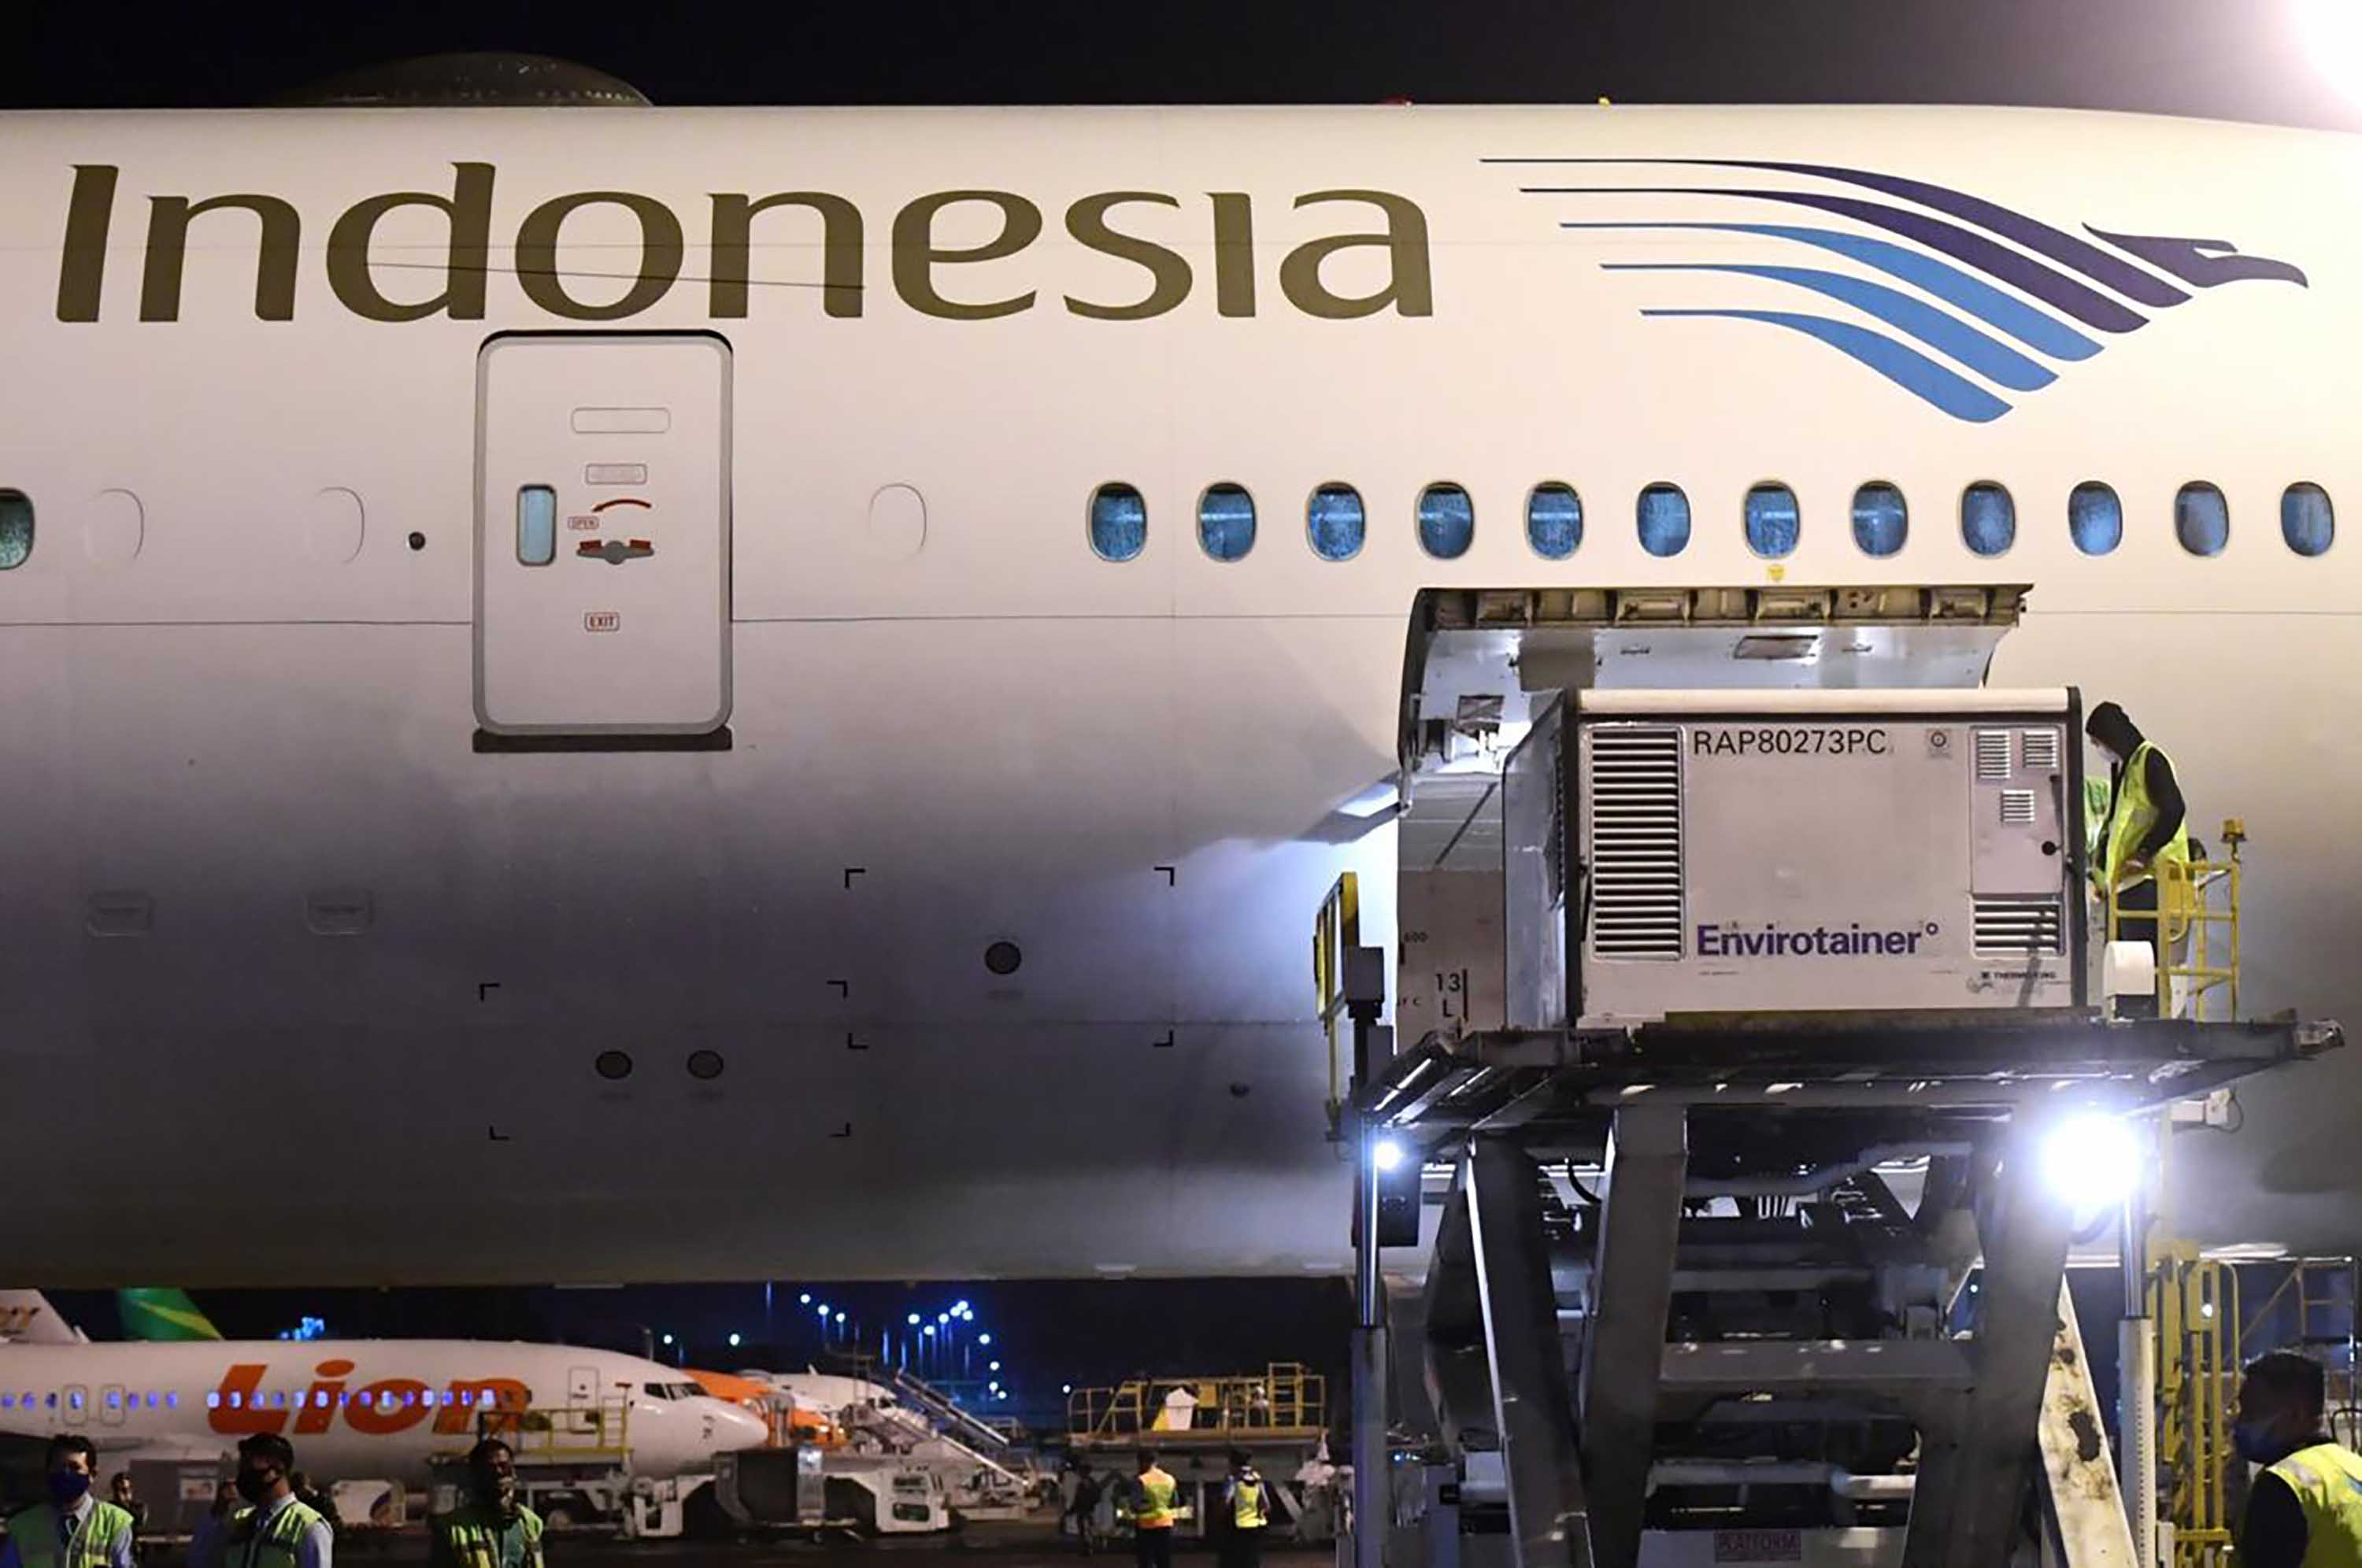 Workers unload a shipment of the Covid-19 vaccine made by Sinovac, upon its arrival from Beijing at the Jakarta International Airport in Indonesia on December 6.